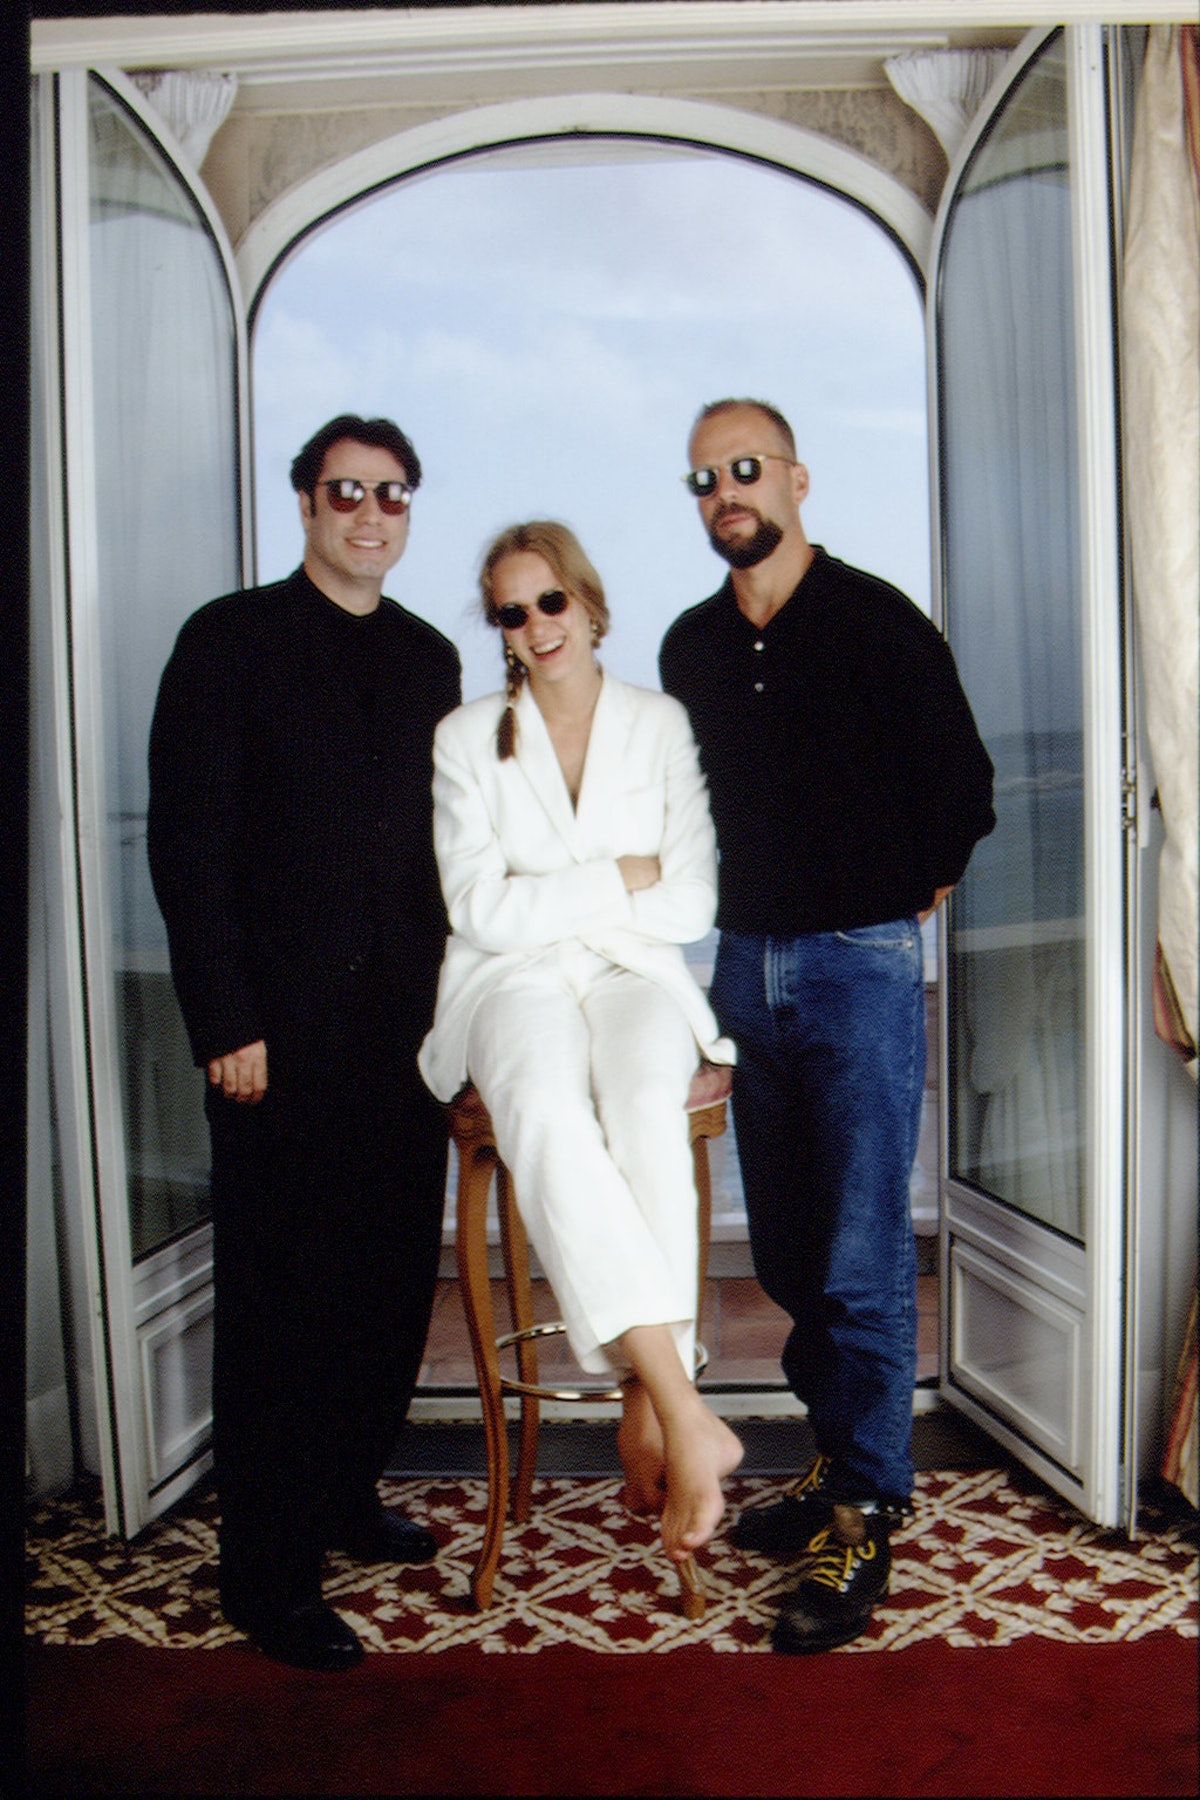 THE FILM CREW FROM 'PULP FICTION' IN CANNES